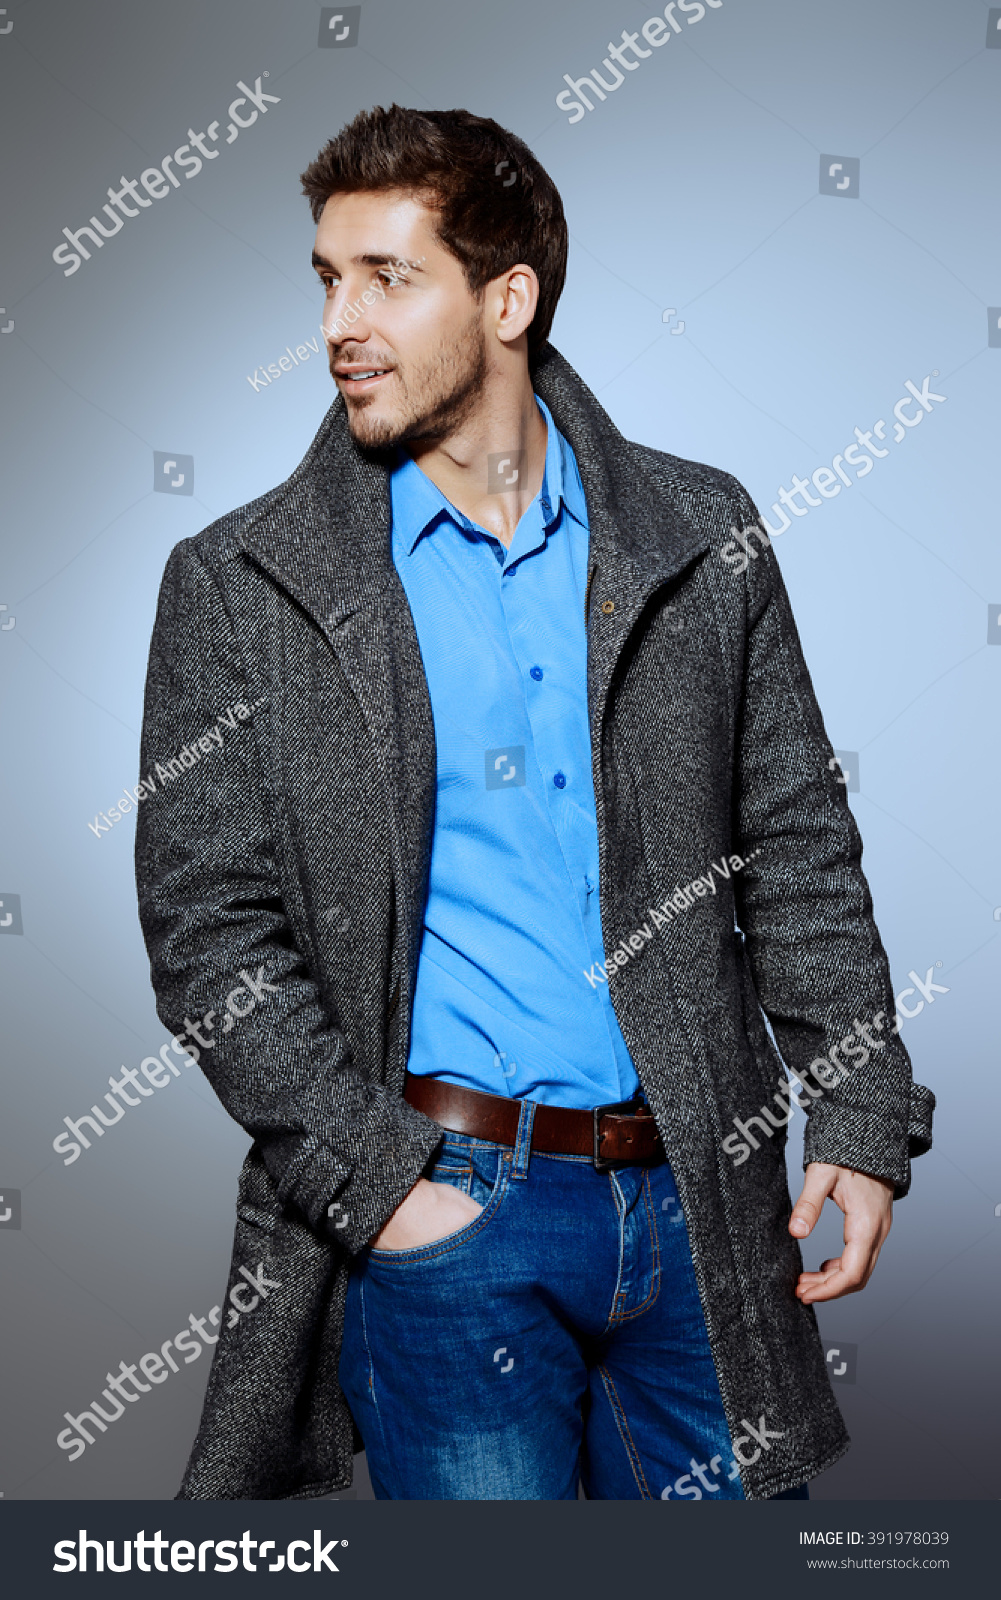 Handsome Man Wearing Jeans Clothes Coat Stock Photo 391978039 - Shutterstock